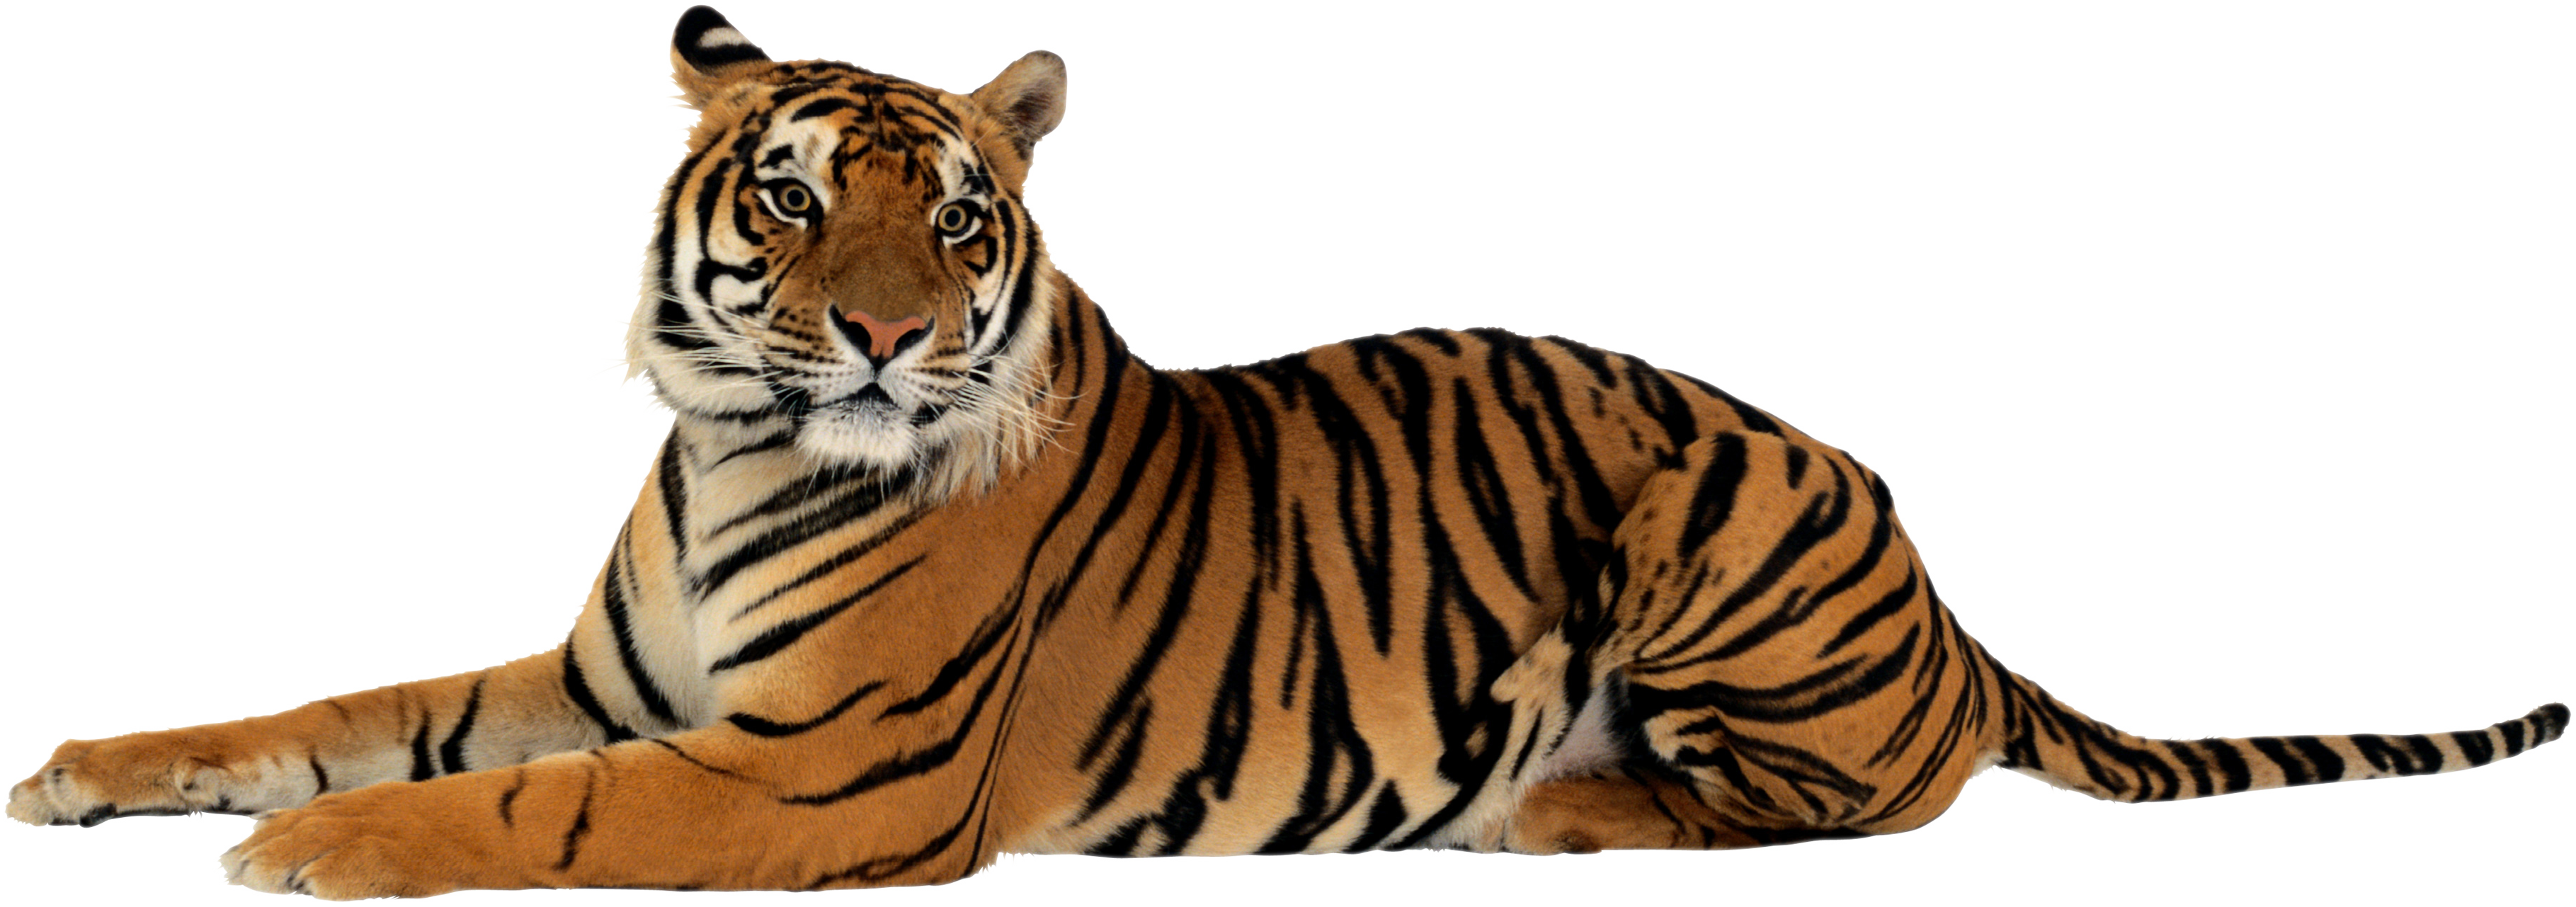 Png transparent images all. Tired clipart tiger